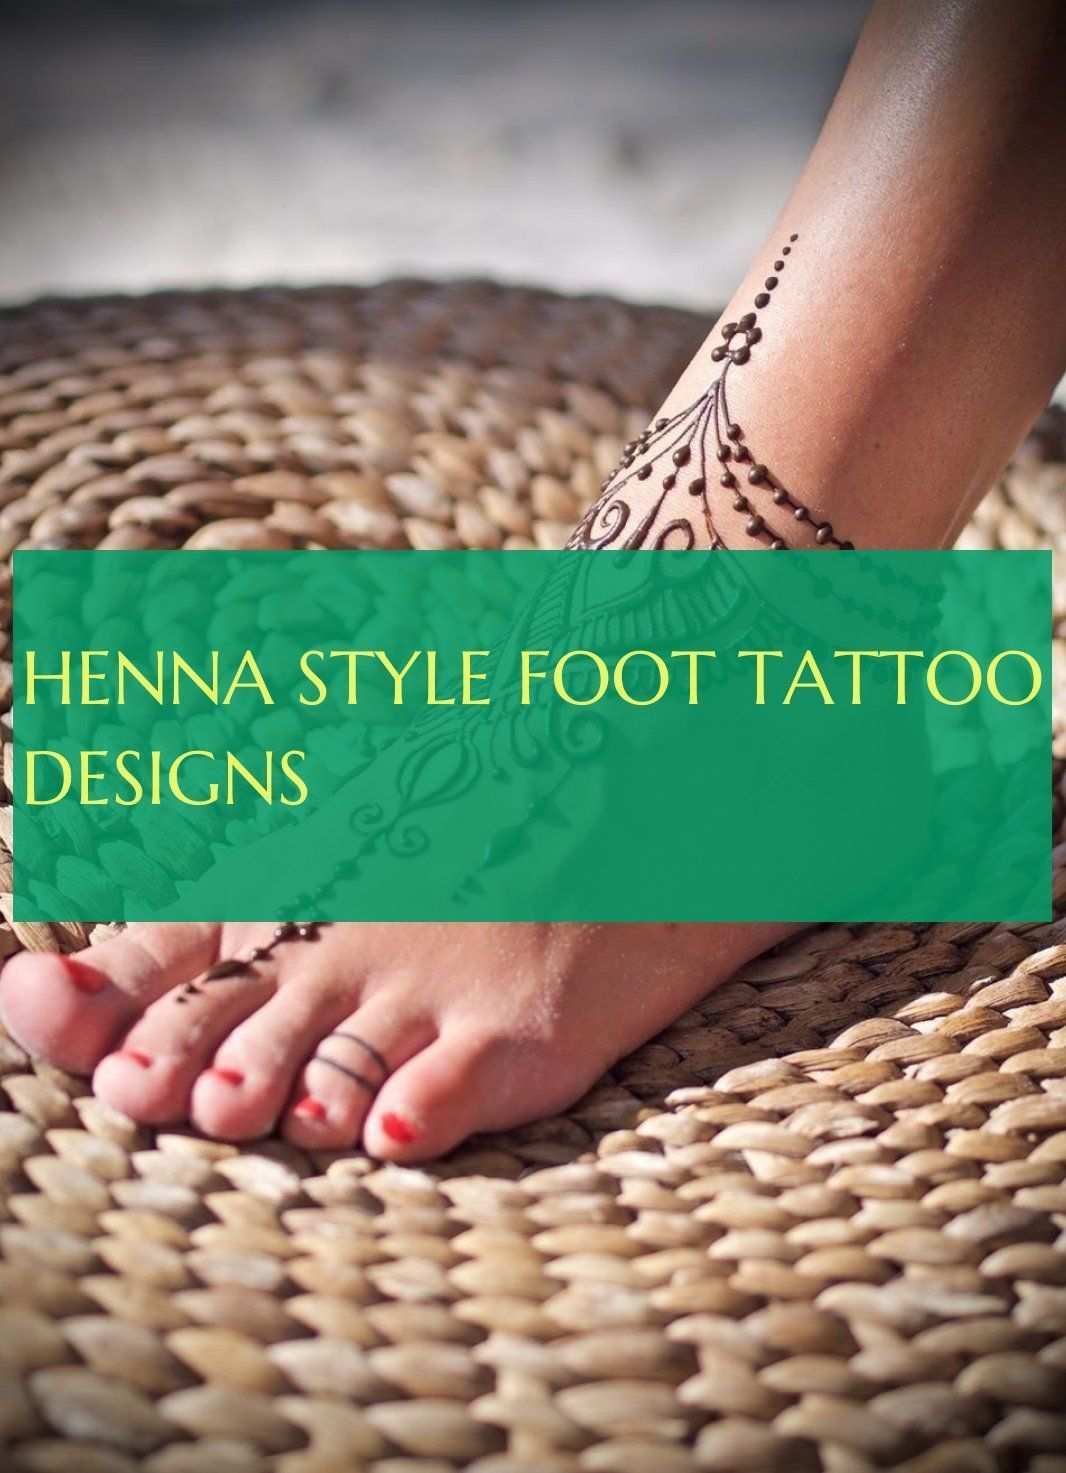 henna style foot tattoo designs #rosaryfoottattoos henna style foot tattoo designs #rosaryfoottattoos henna style foot tattoo designs #rosaryfoottattoos henna style foot tattoo designs #rosaryfoottattoos